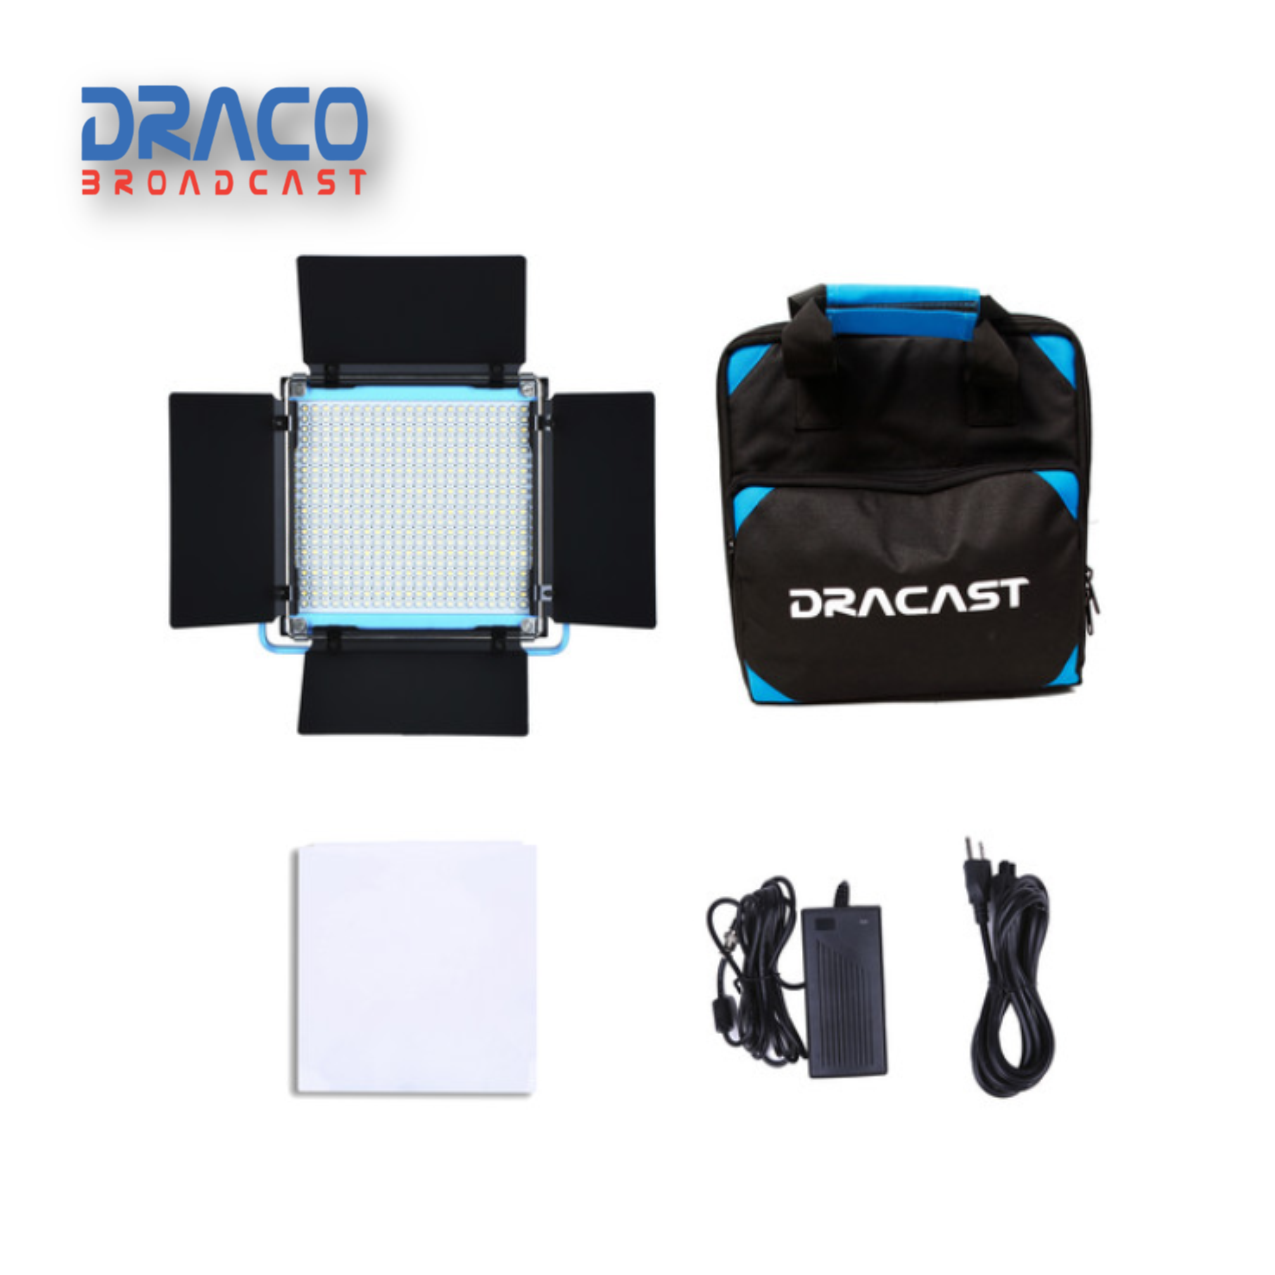 Dracast S-Series Plus LED500 Daylight LED 3 Light Kit with NP-F Battery Plates and Nylon Padded Travel Case Kit Lights Draco Broadcast